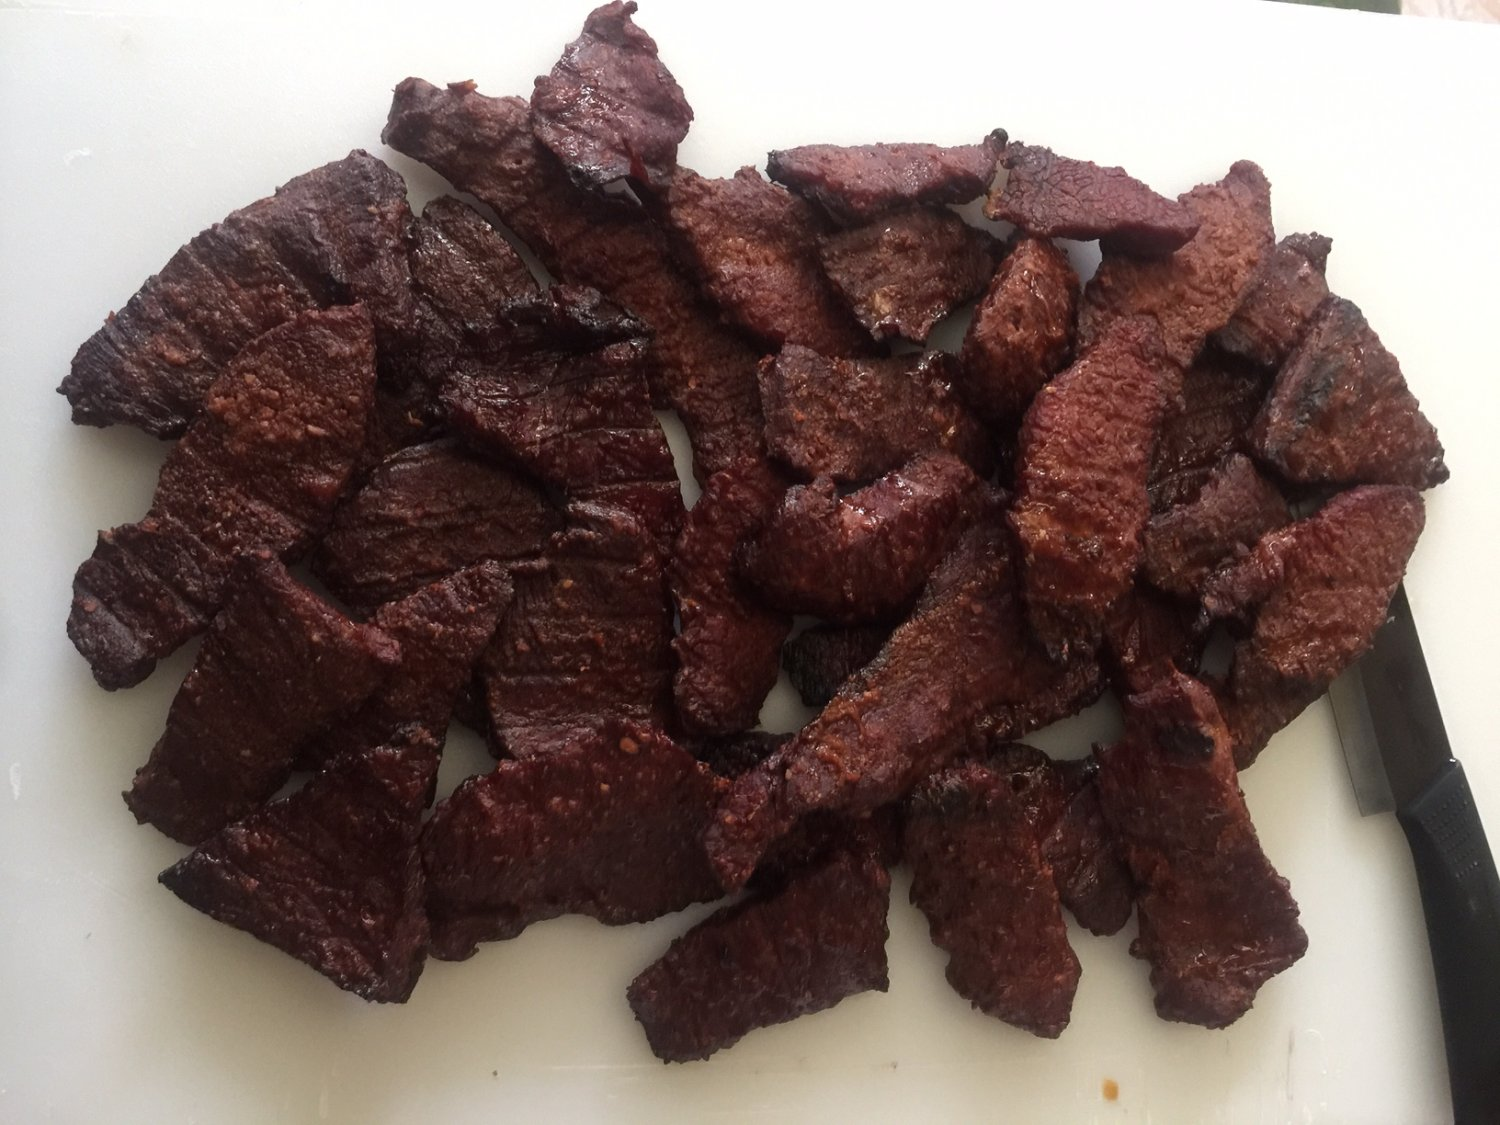 Adobe Smoked beef jerky 8 oz package Fathers Day Artisan Made Fresh